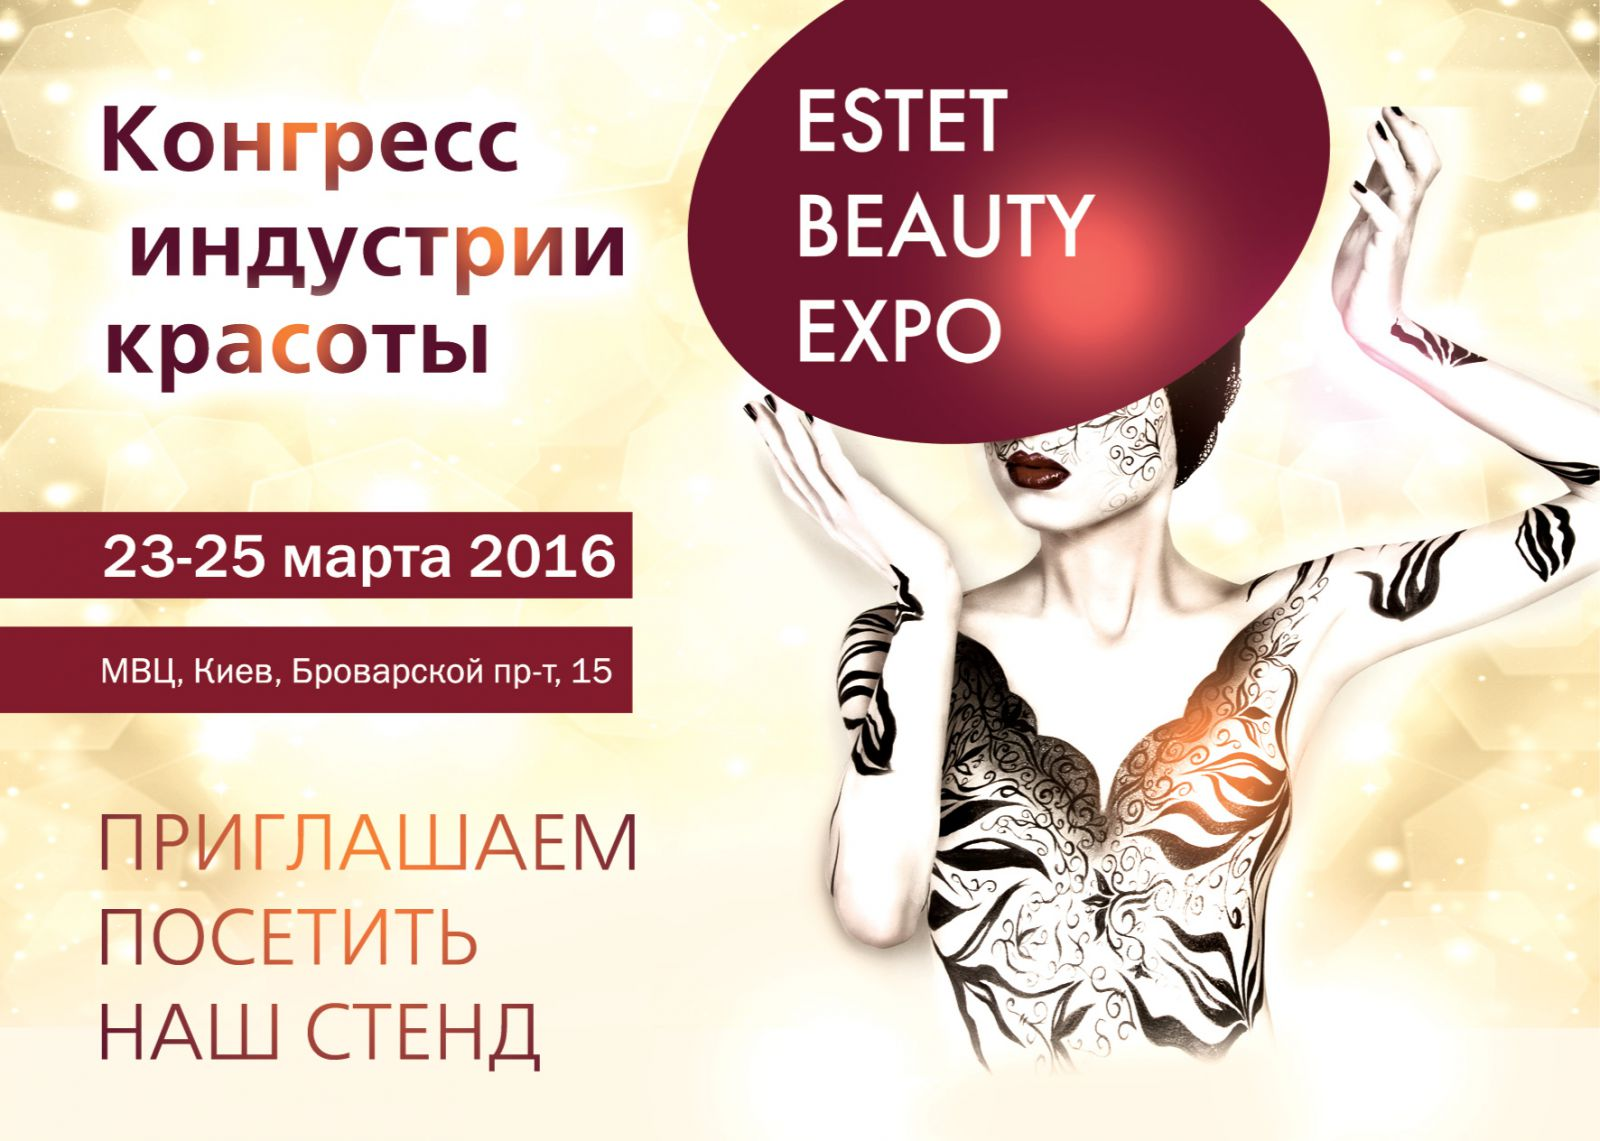 ESTET BEAUTY EXPO 2016